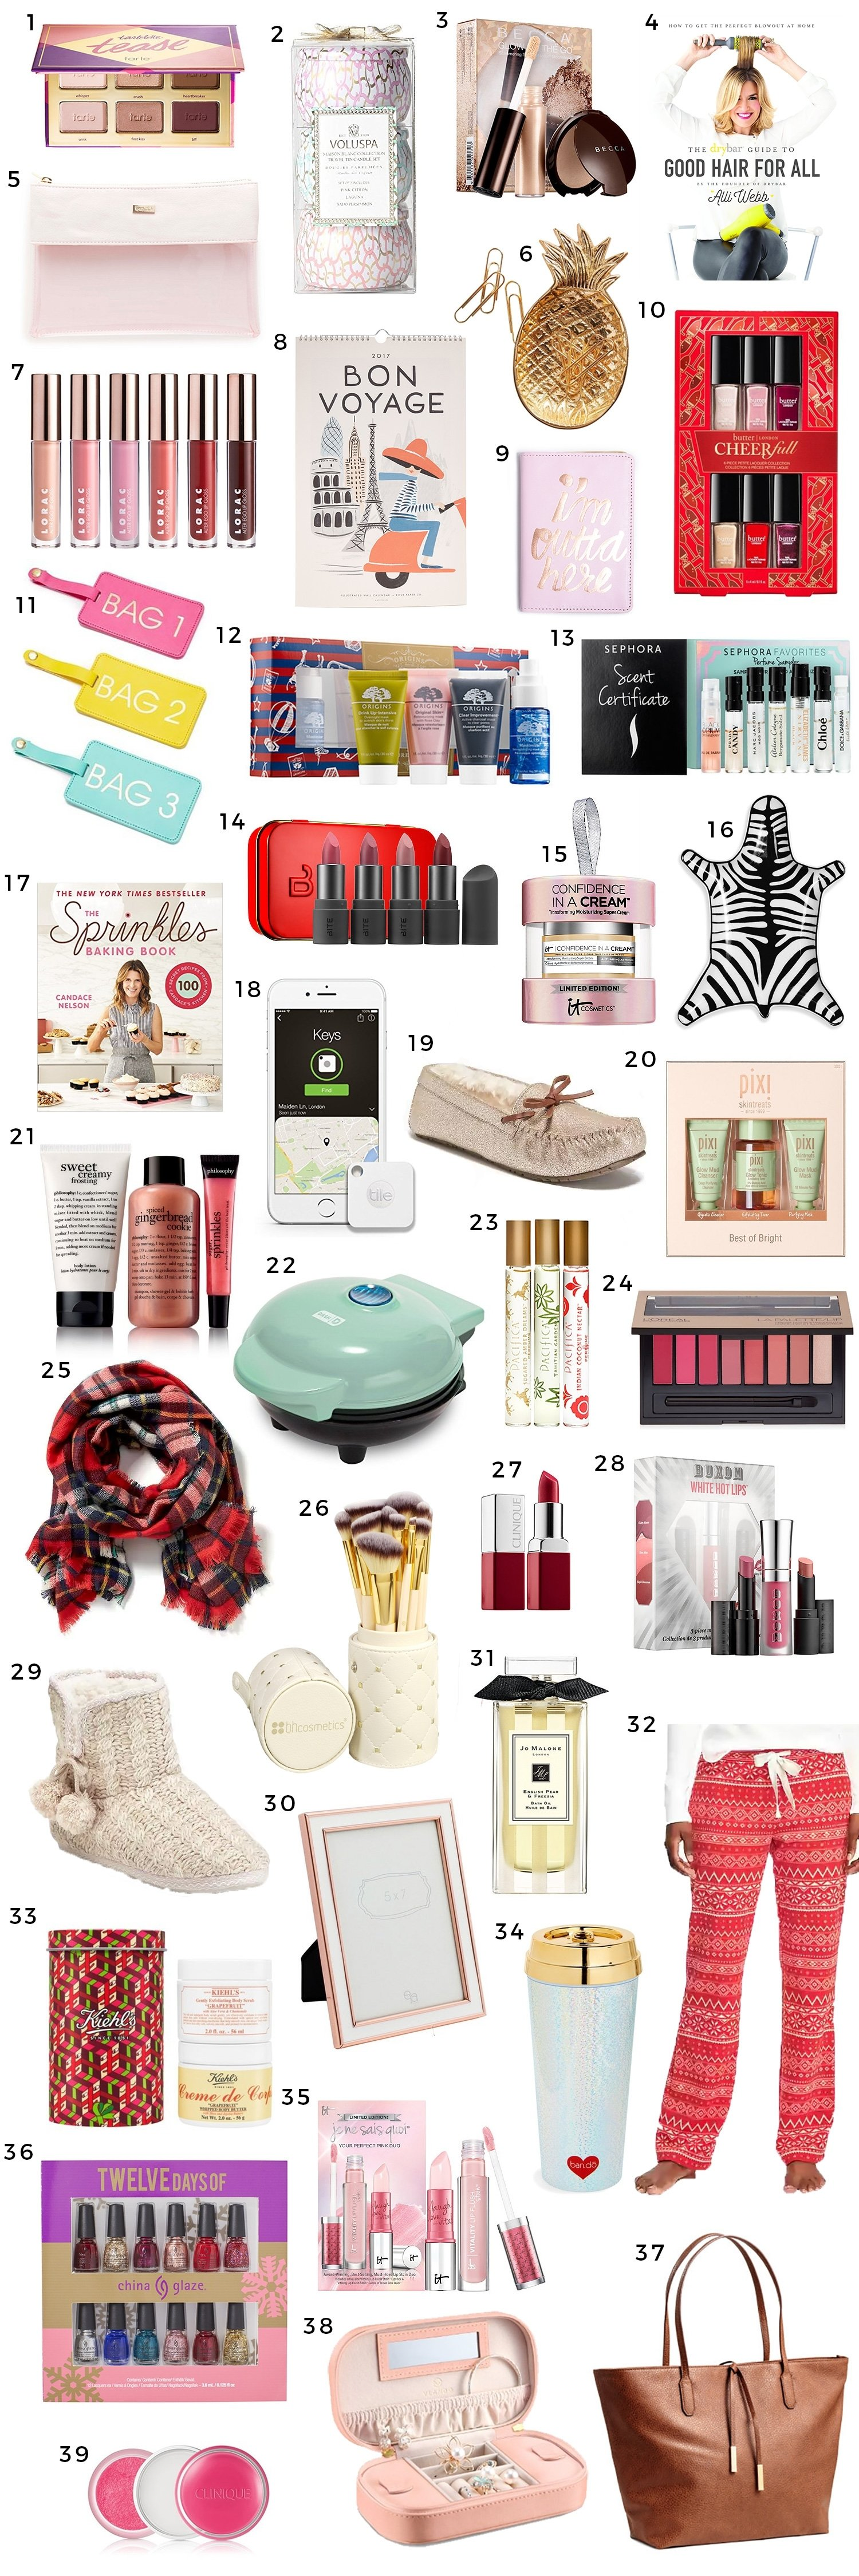 10 Awesome Good Ideas For Christmas Gifts the best christmas gift ideas for women under 25 ashley brooke 11